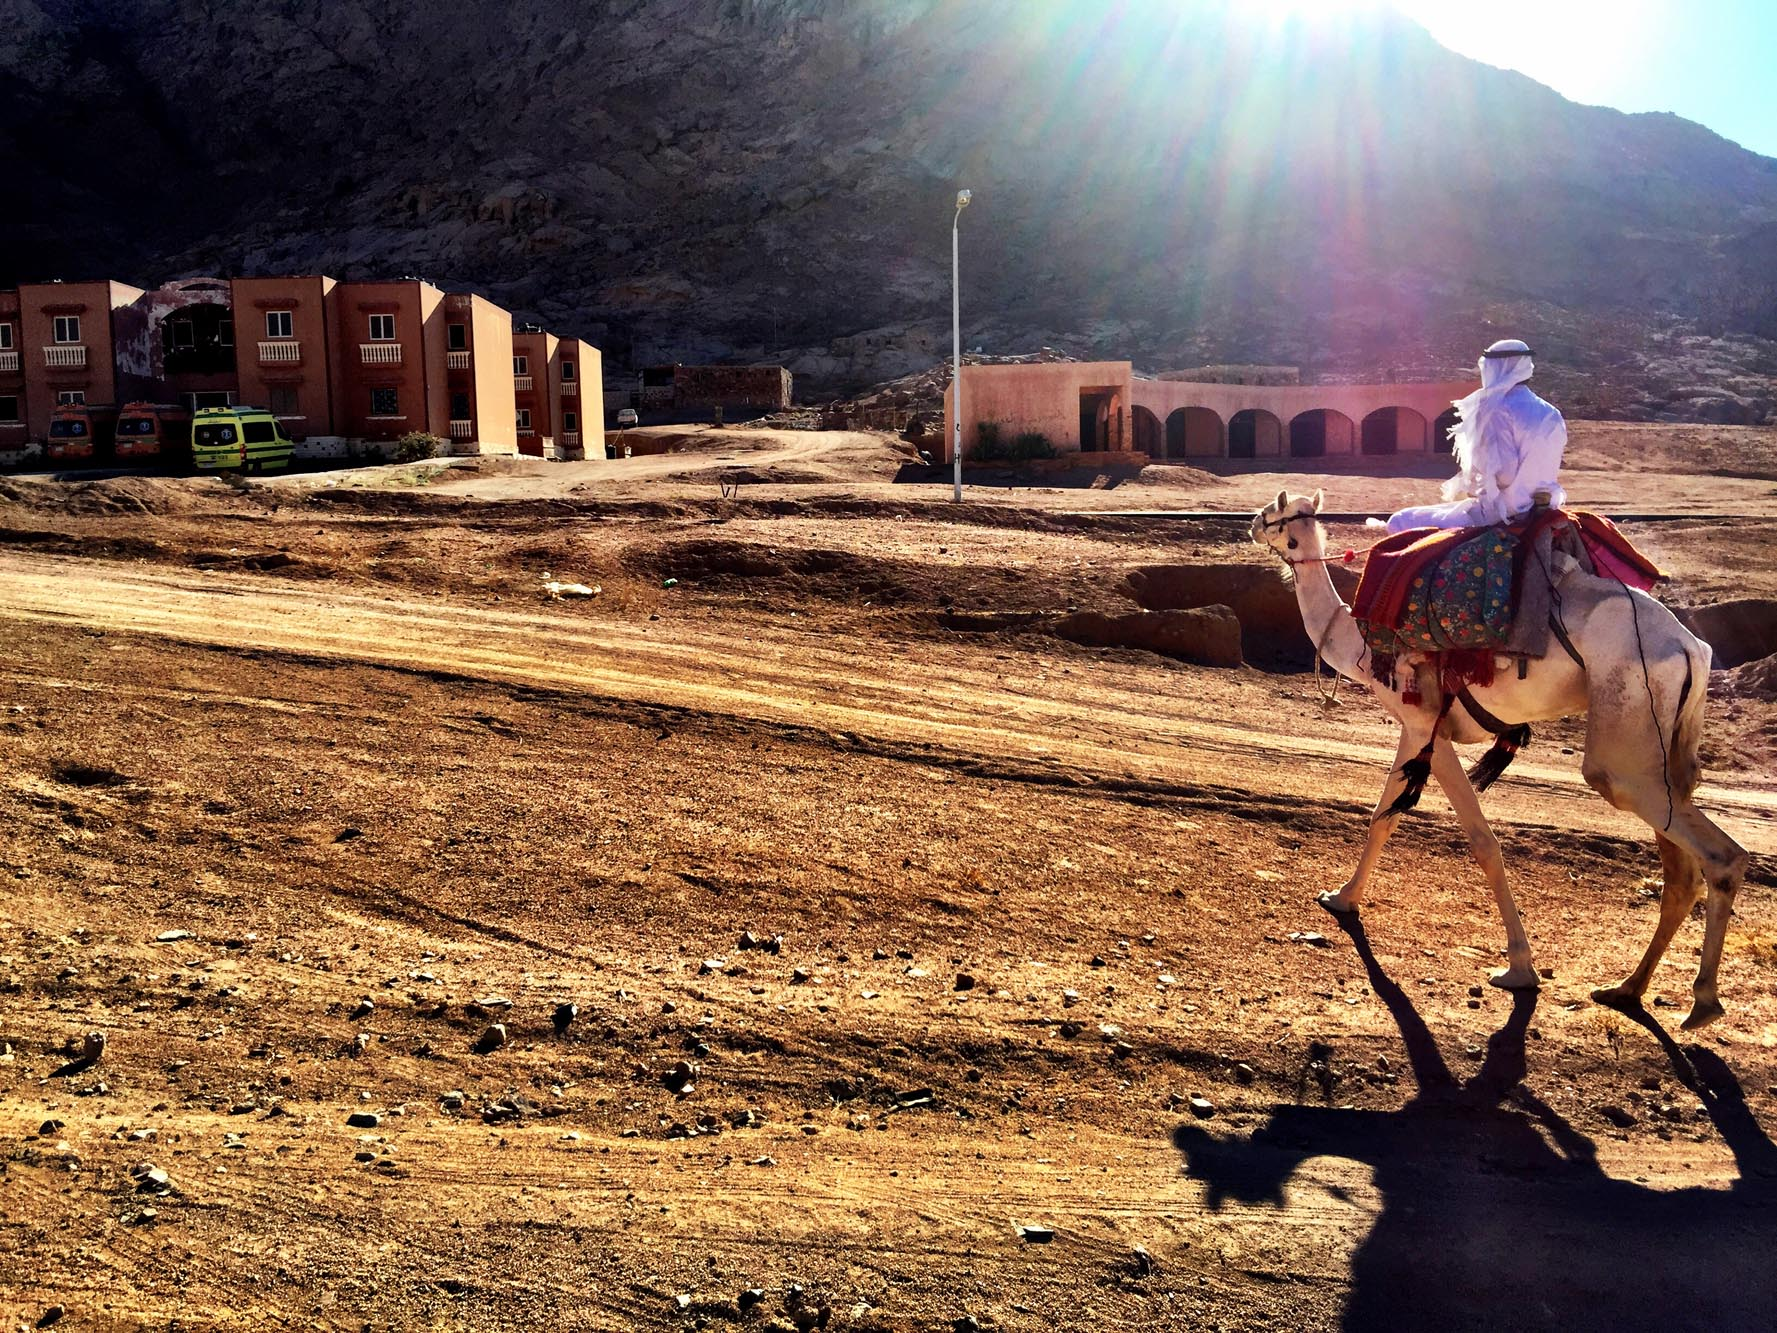 Mohamed riding to the village at sunset